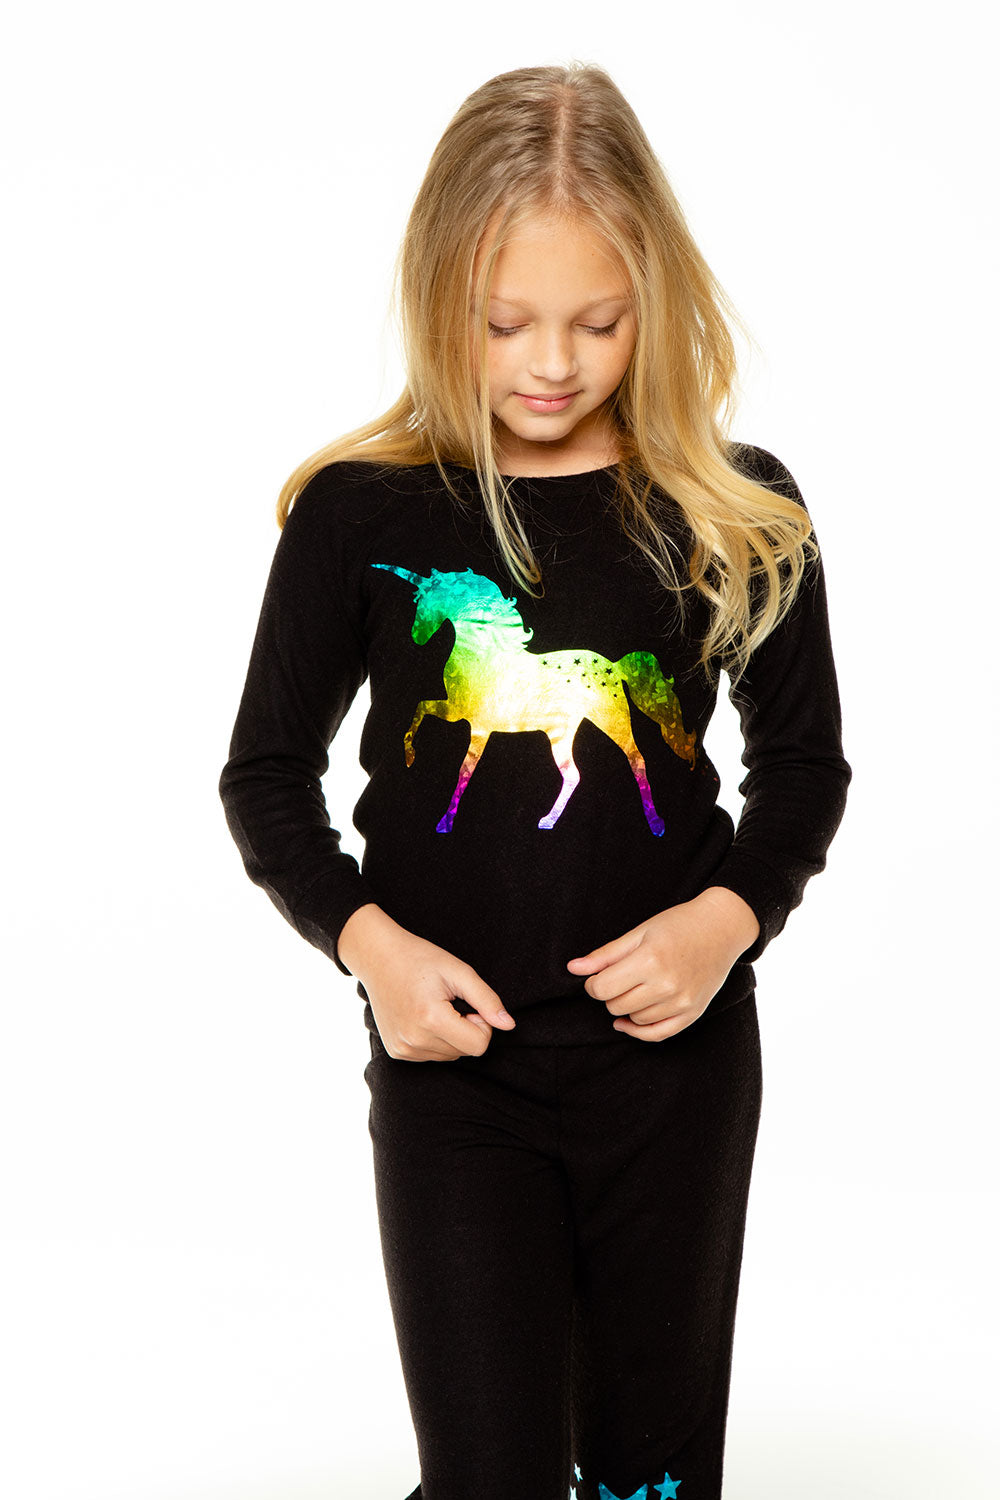 Unicorn Star GIRLS chaserbrand4.myshopify.com